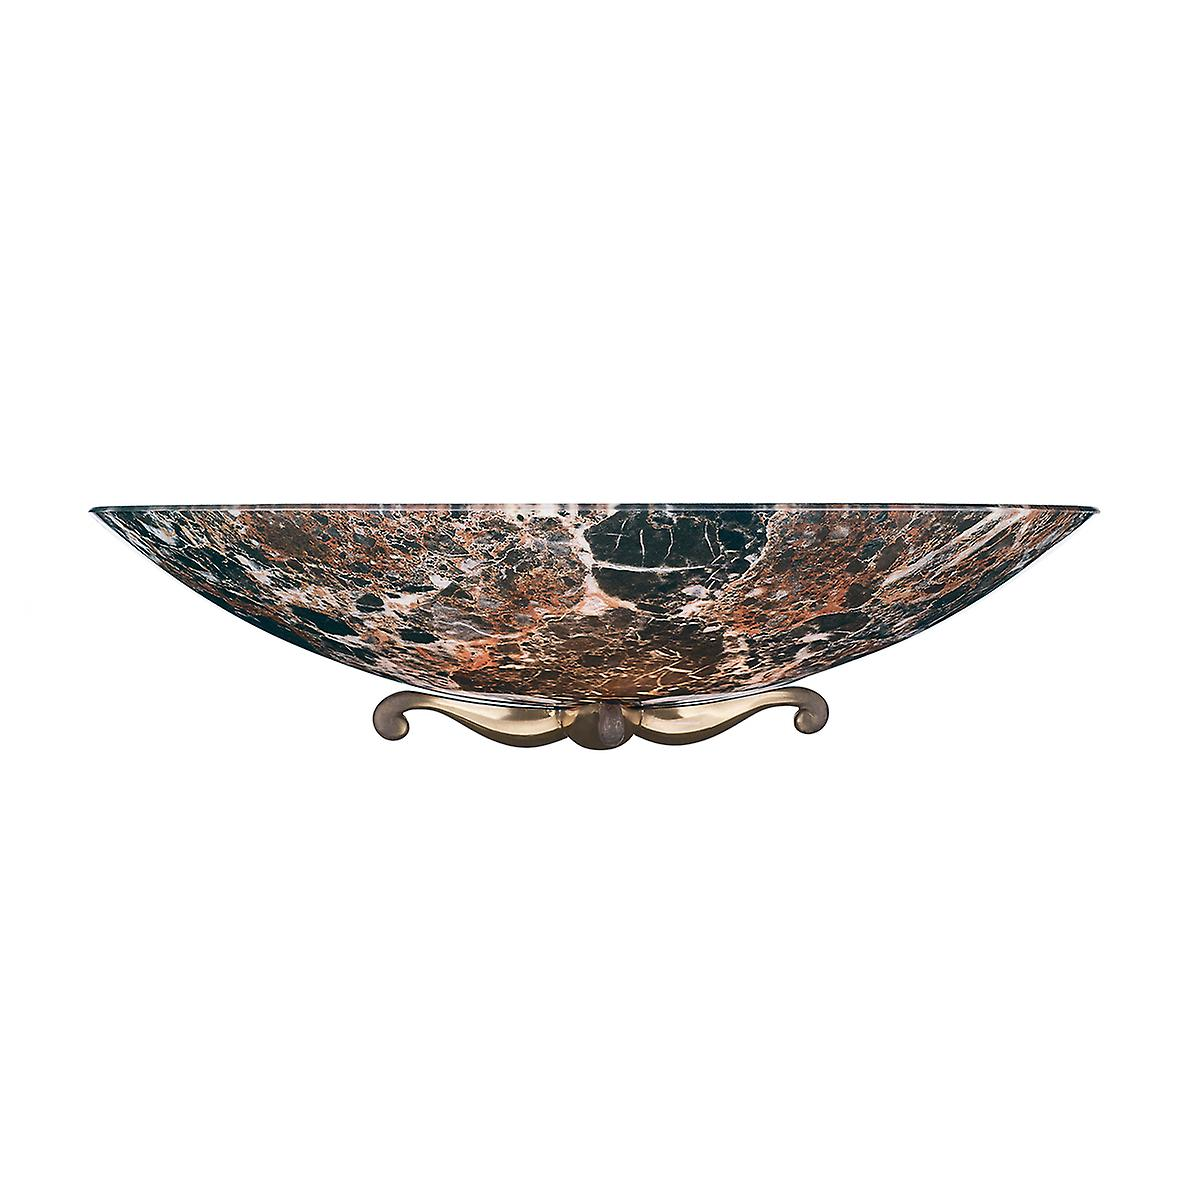 David Hunt MG28 Savoy Wall Washer In Bronze With Dark Marble Glass